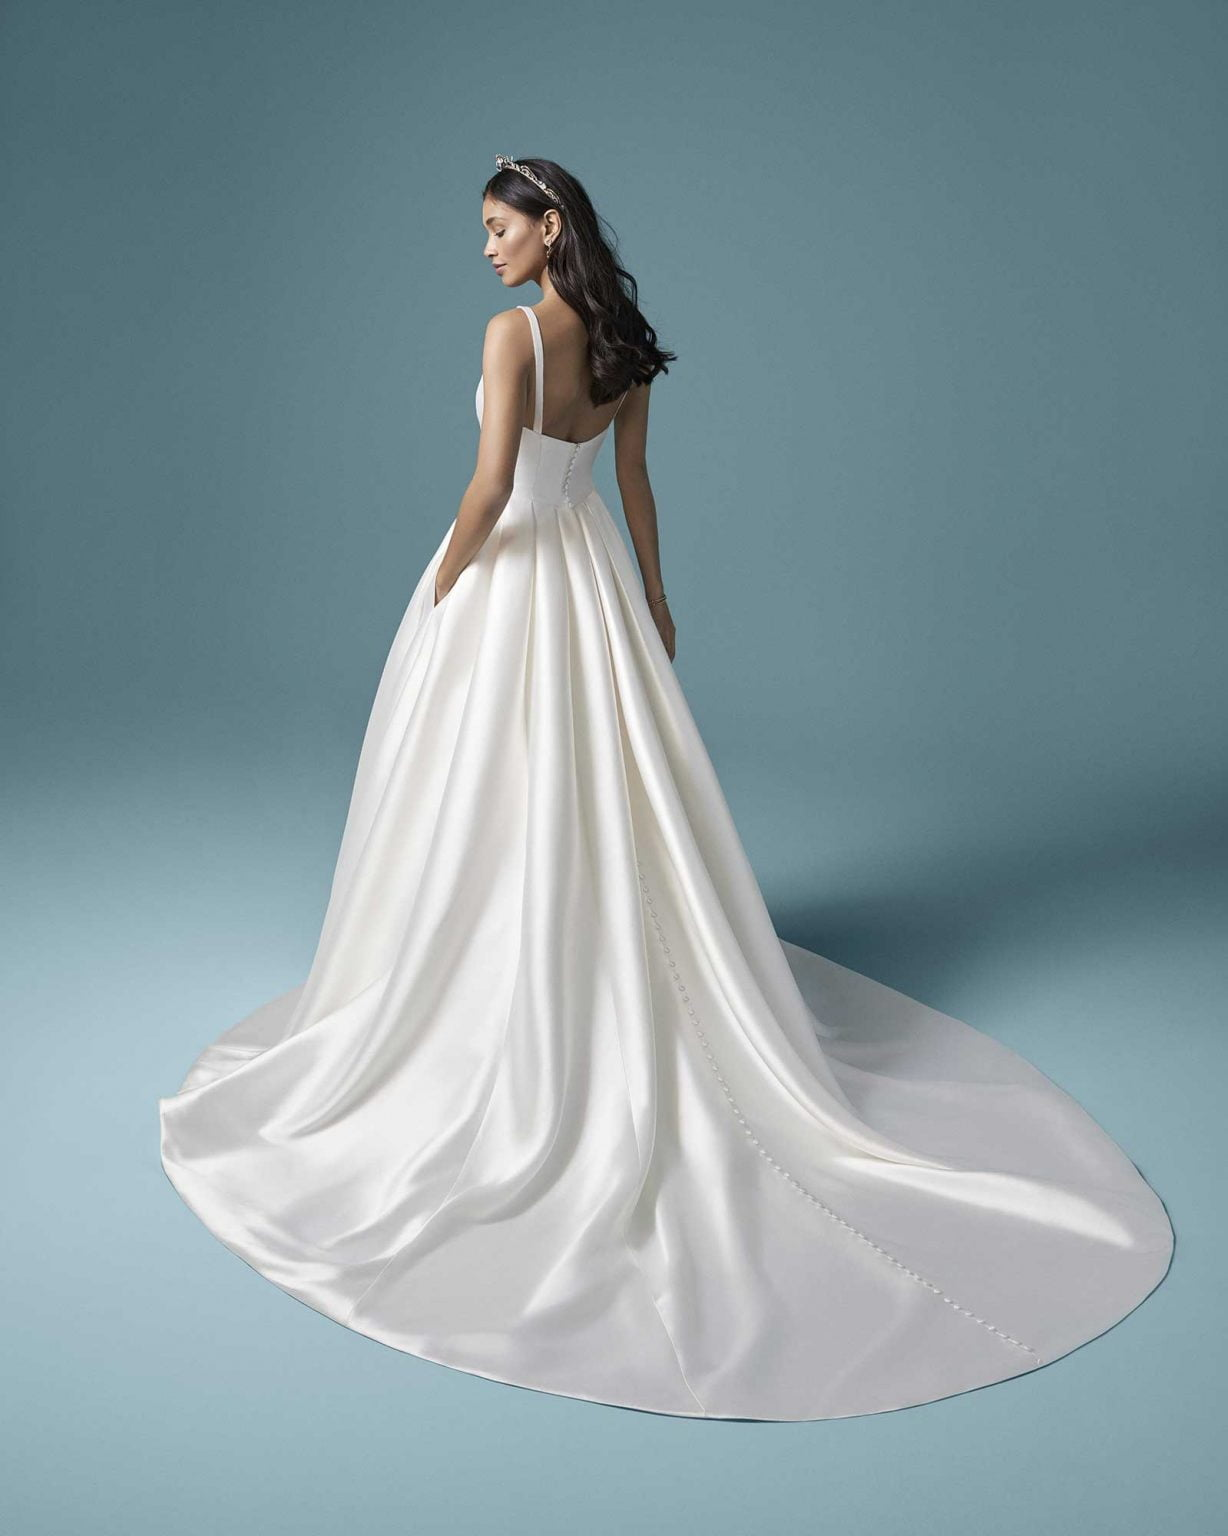 High---Maggie-Sottero-Selena-20MT727-Back-IV-Uncropped